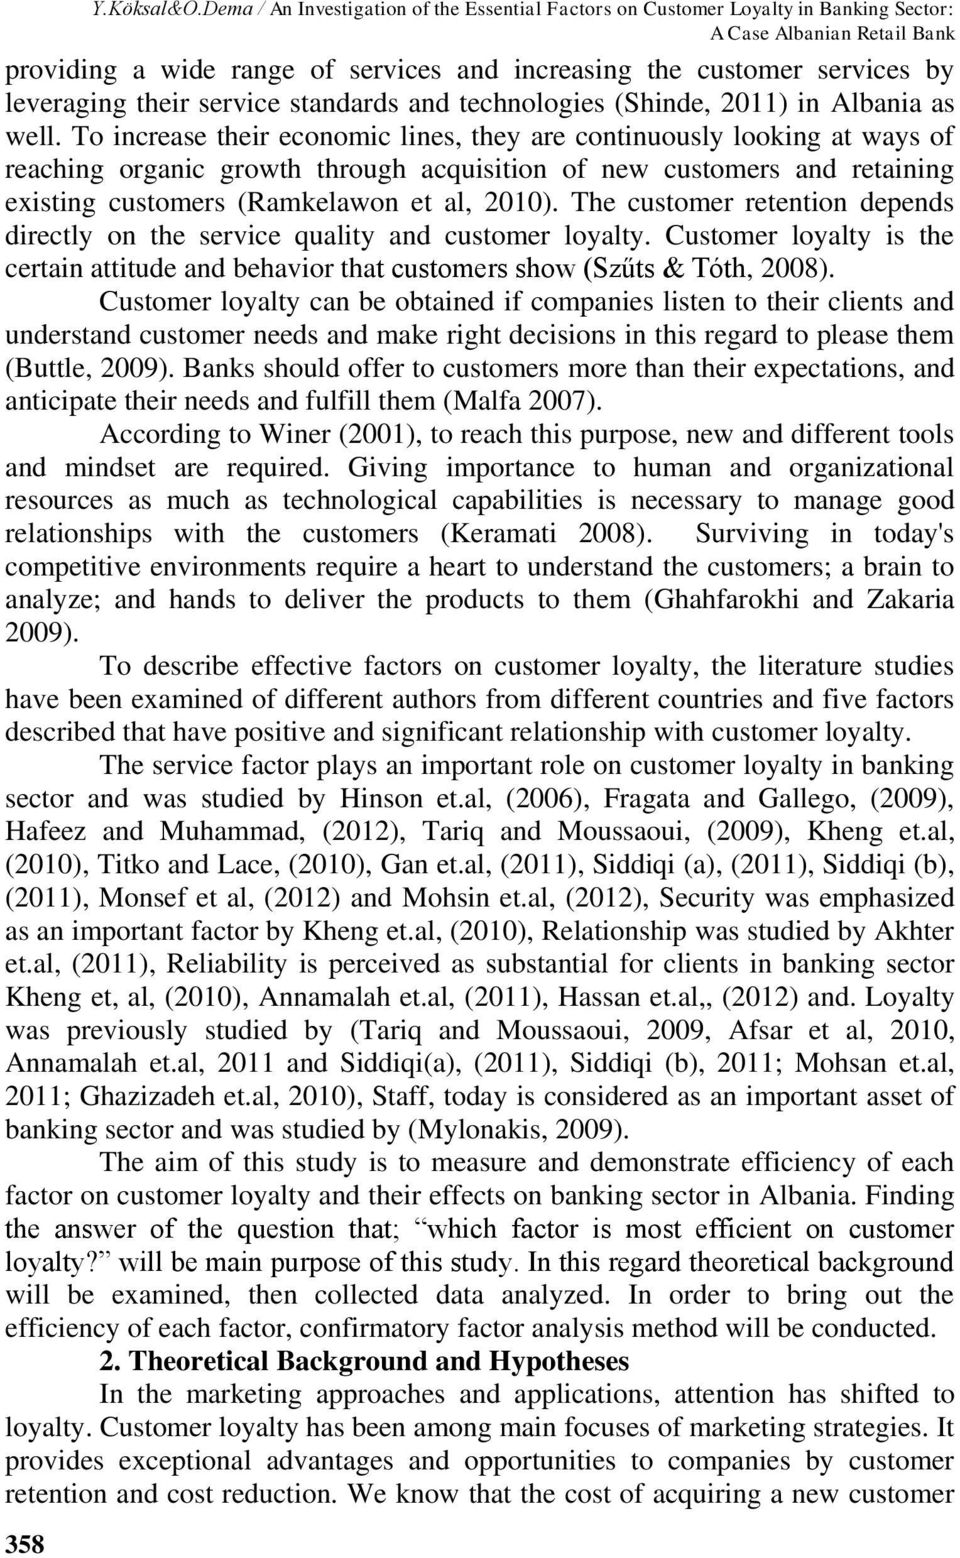 leveraging their service standards and technologies (Shinde, 2011) in Albania as well.